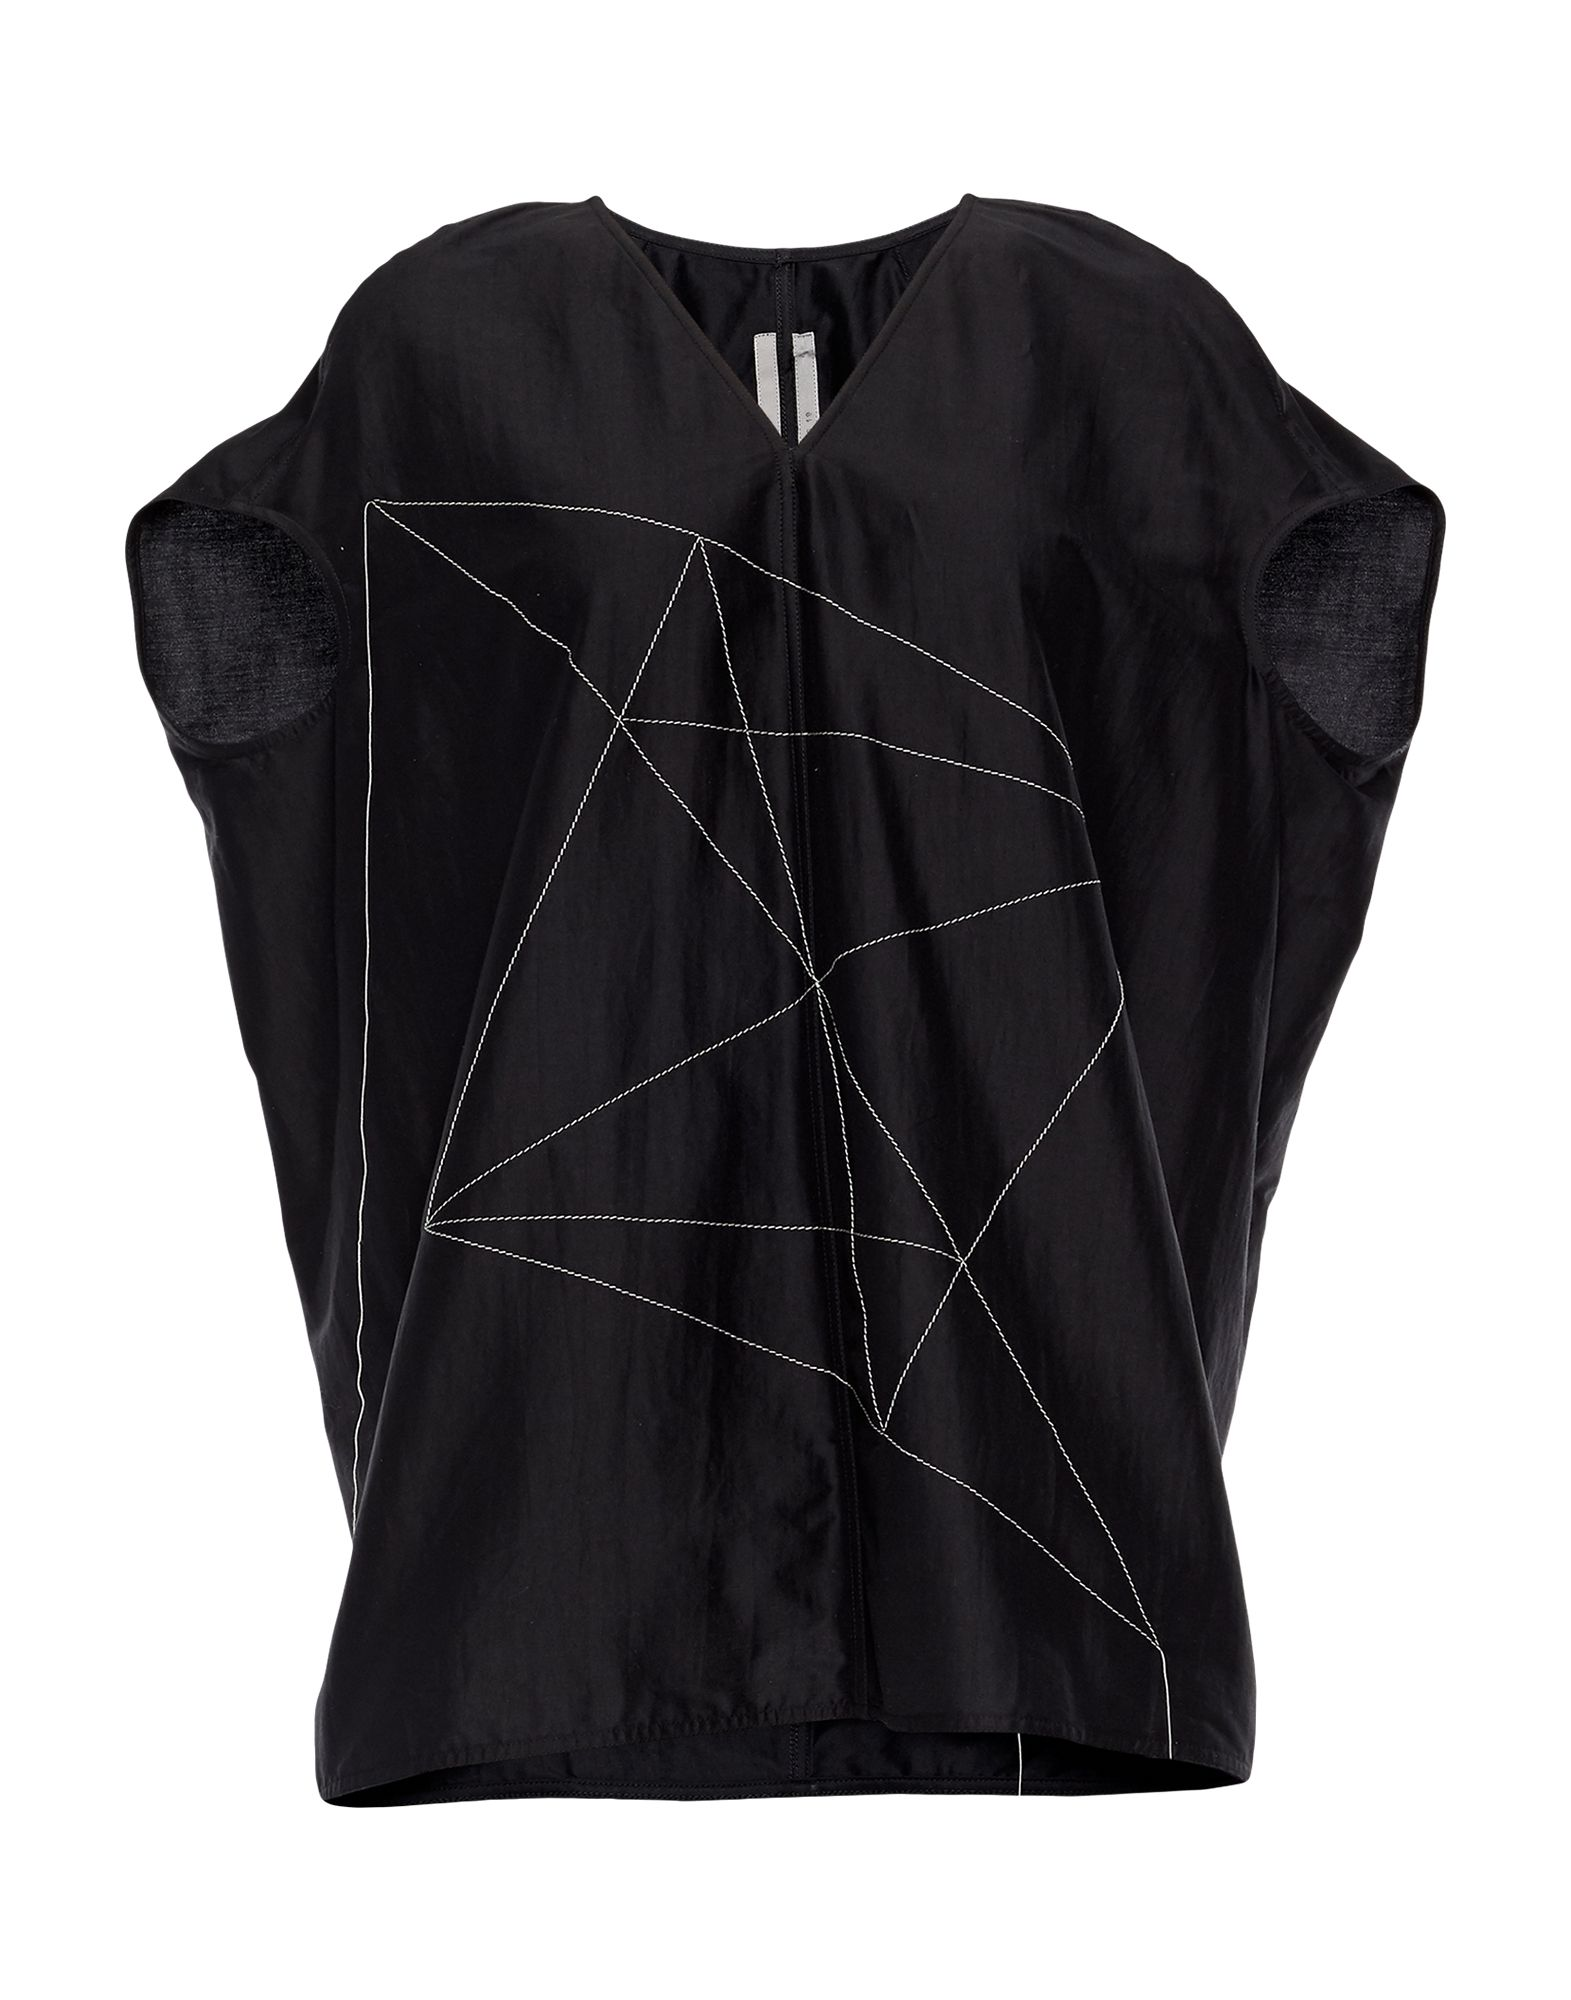 RICK OWENS Blouses. poplin, stitching, solid color, short sleeves, v-neck, no pockets, small sized. 77% Cotton, 23% Silk, Polyester